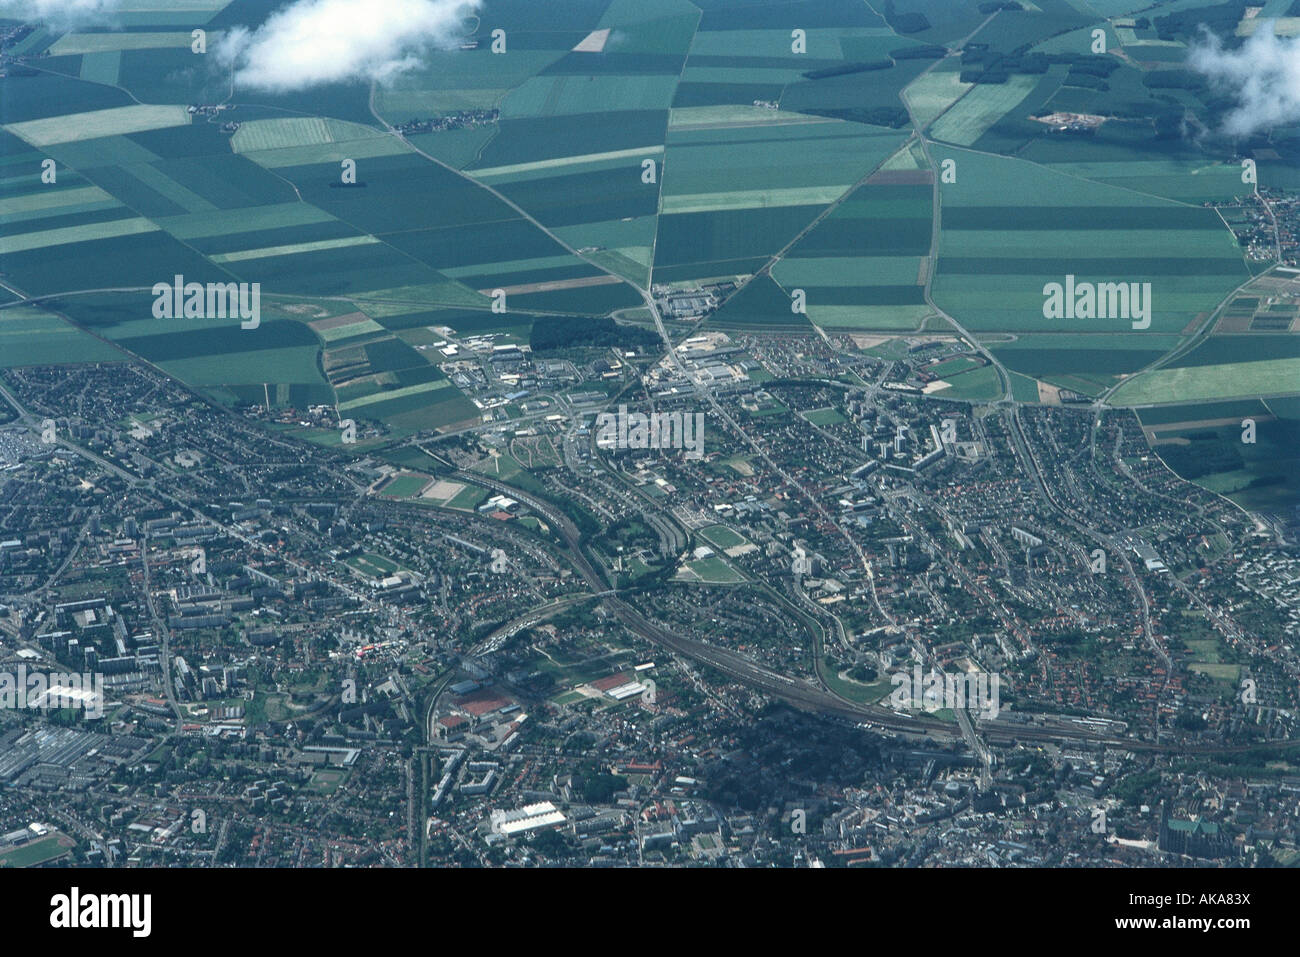 Aerial view of urbanized area bordering on rural fields - Stock Image